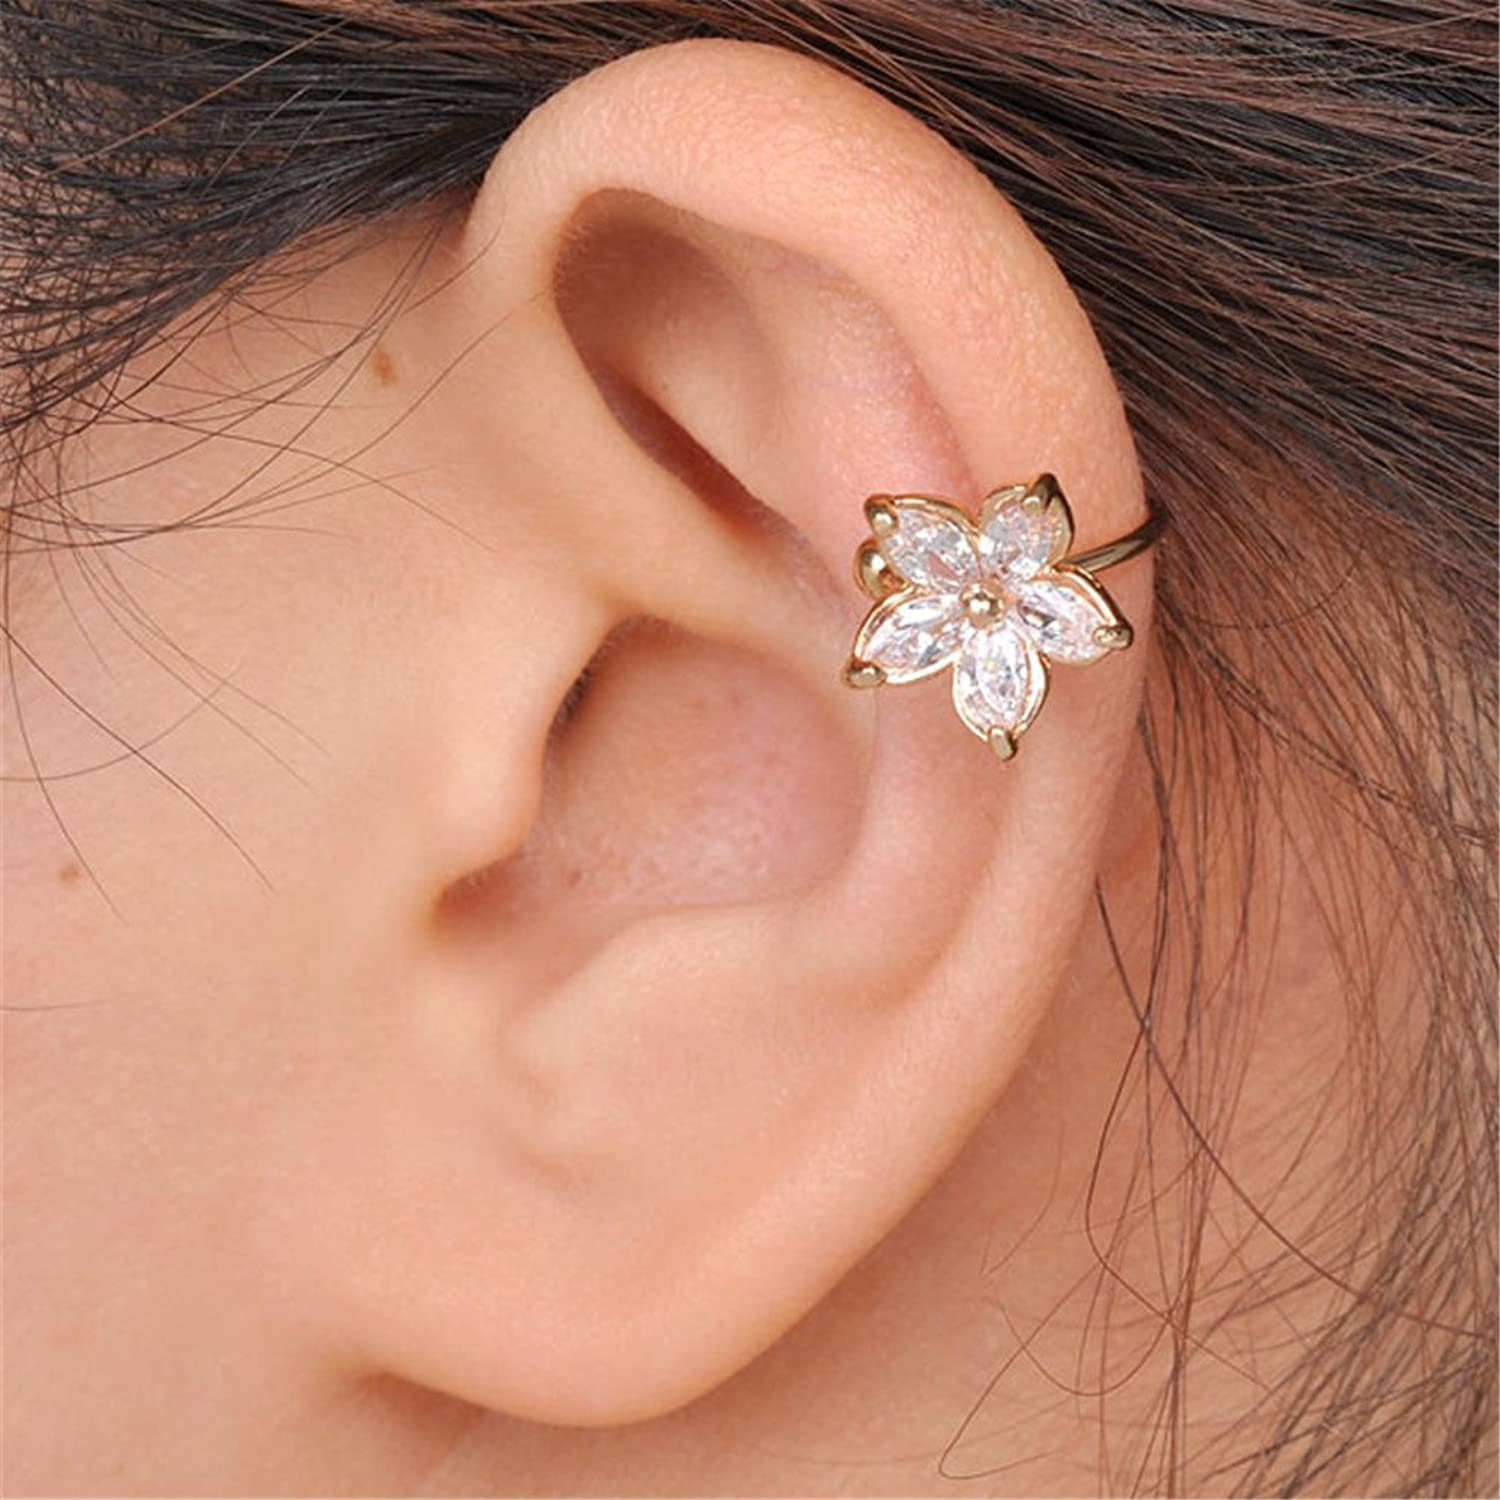 for and clip the cuffs stud wrap ear products girls earrings on sexy women ears sparkles